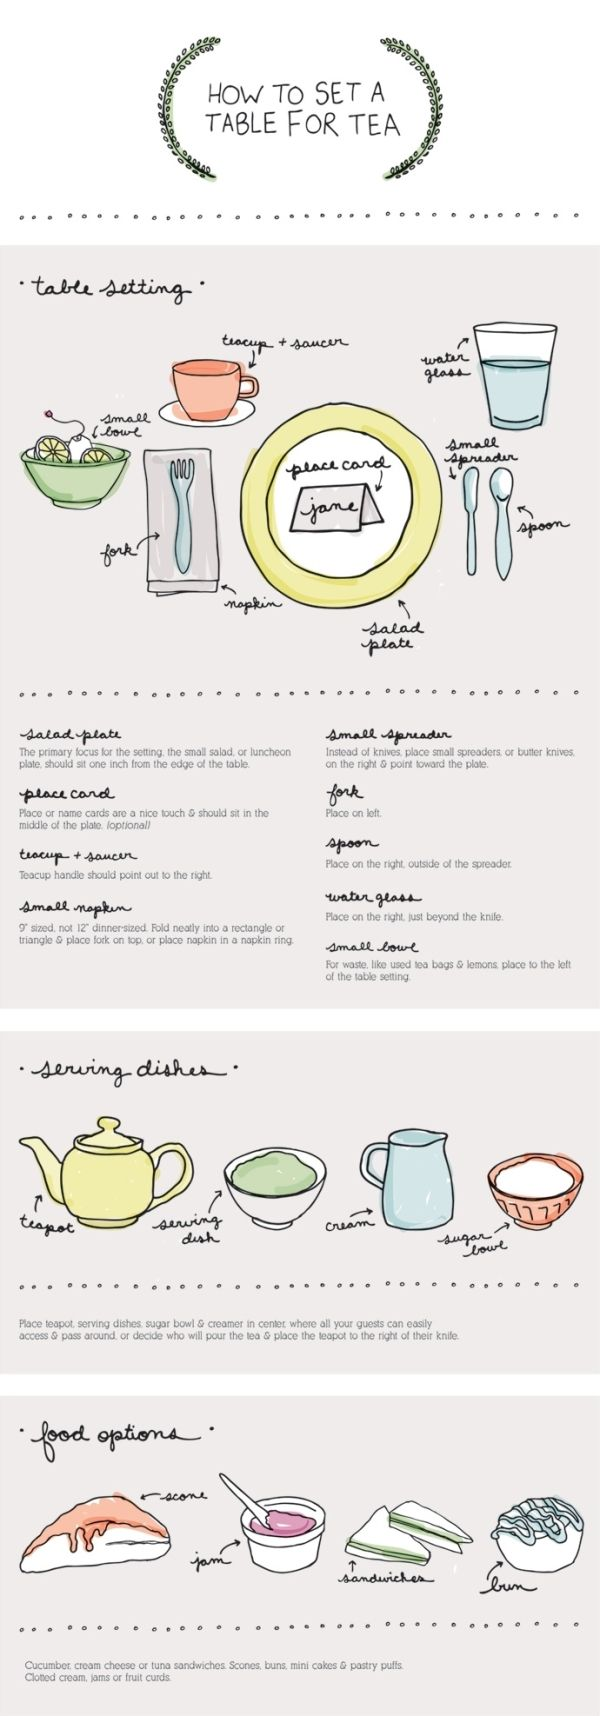 How to Set a Table for Tea - Infographic by vivian